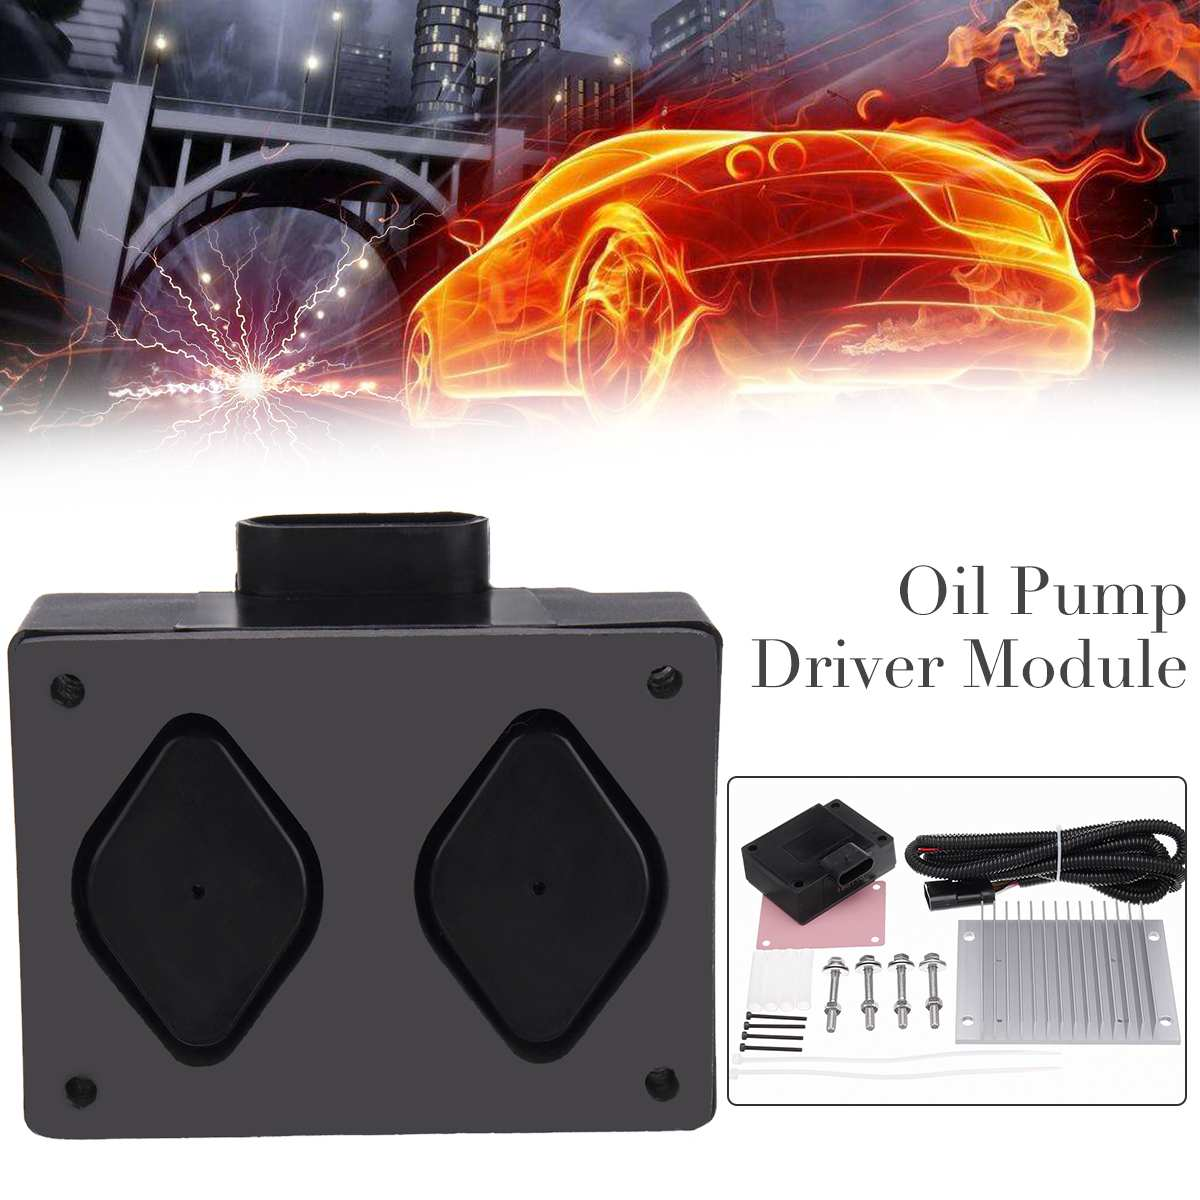 Fuel Pump Driver Module PMD and Relocation Kit for Chevy GMC 6.5L Diesel V8